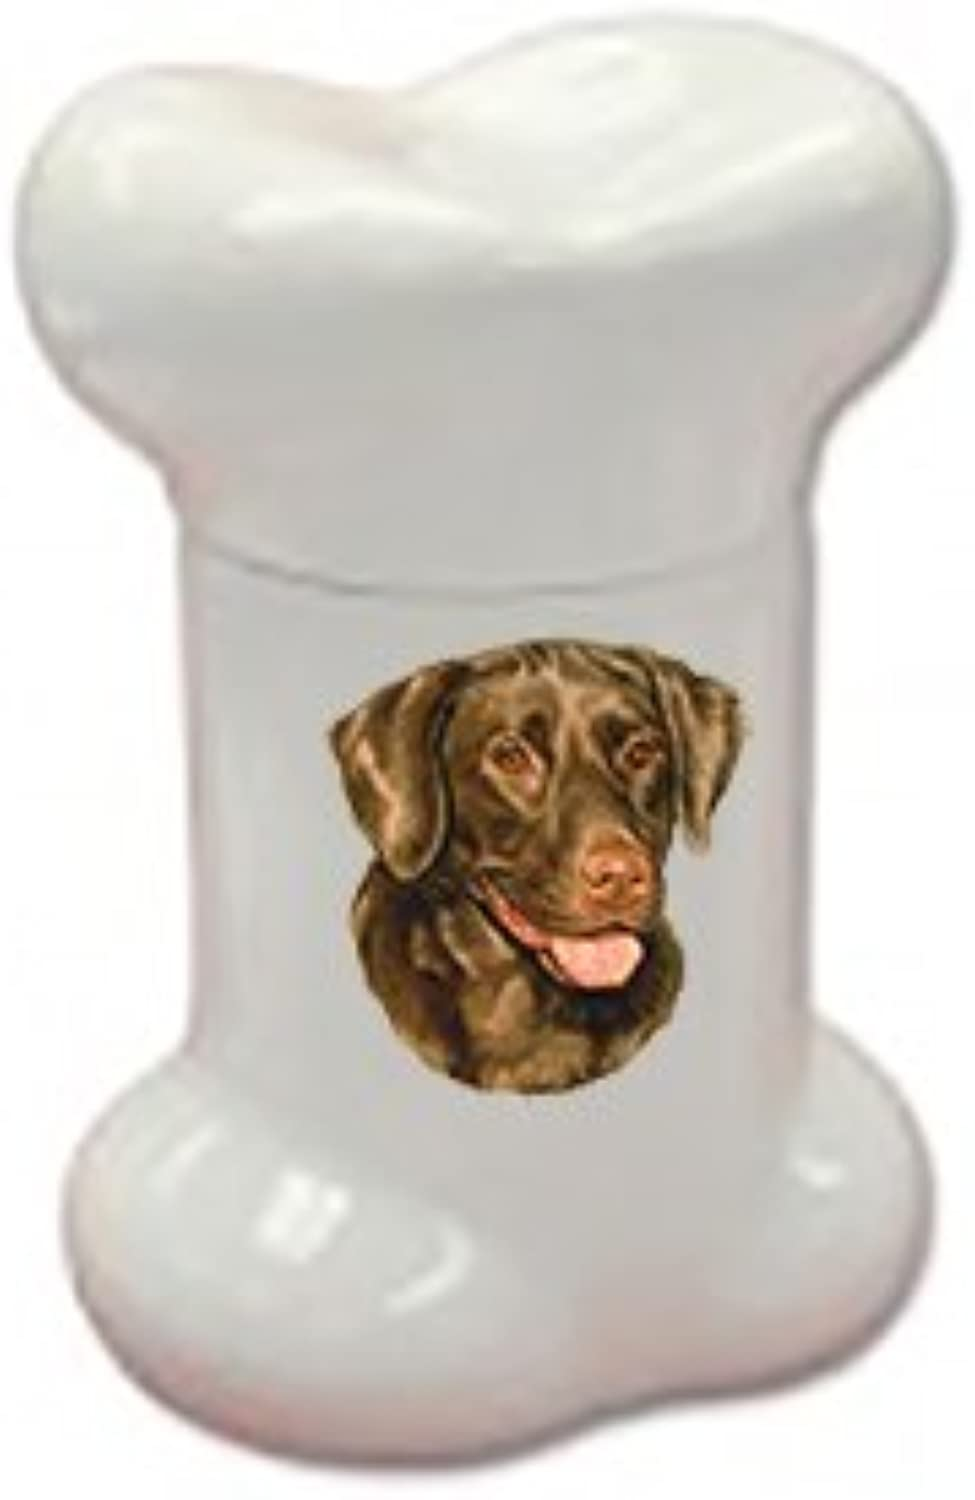 Best of Breed Chocolate Labrador Doggie Bone Treat Jar